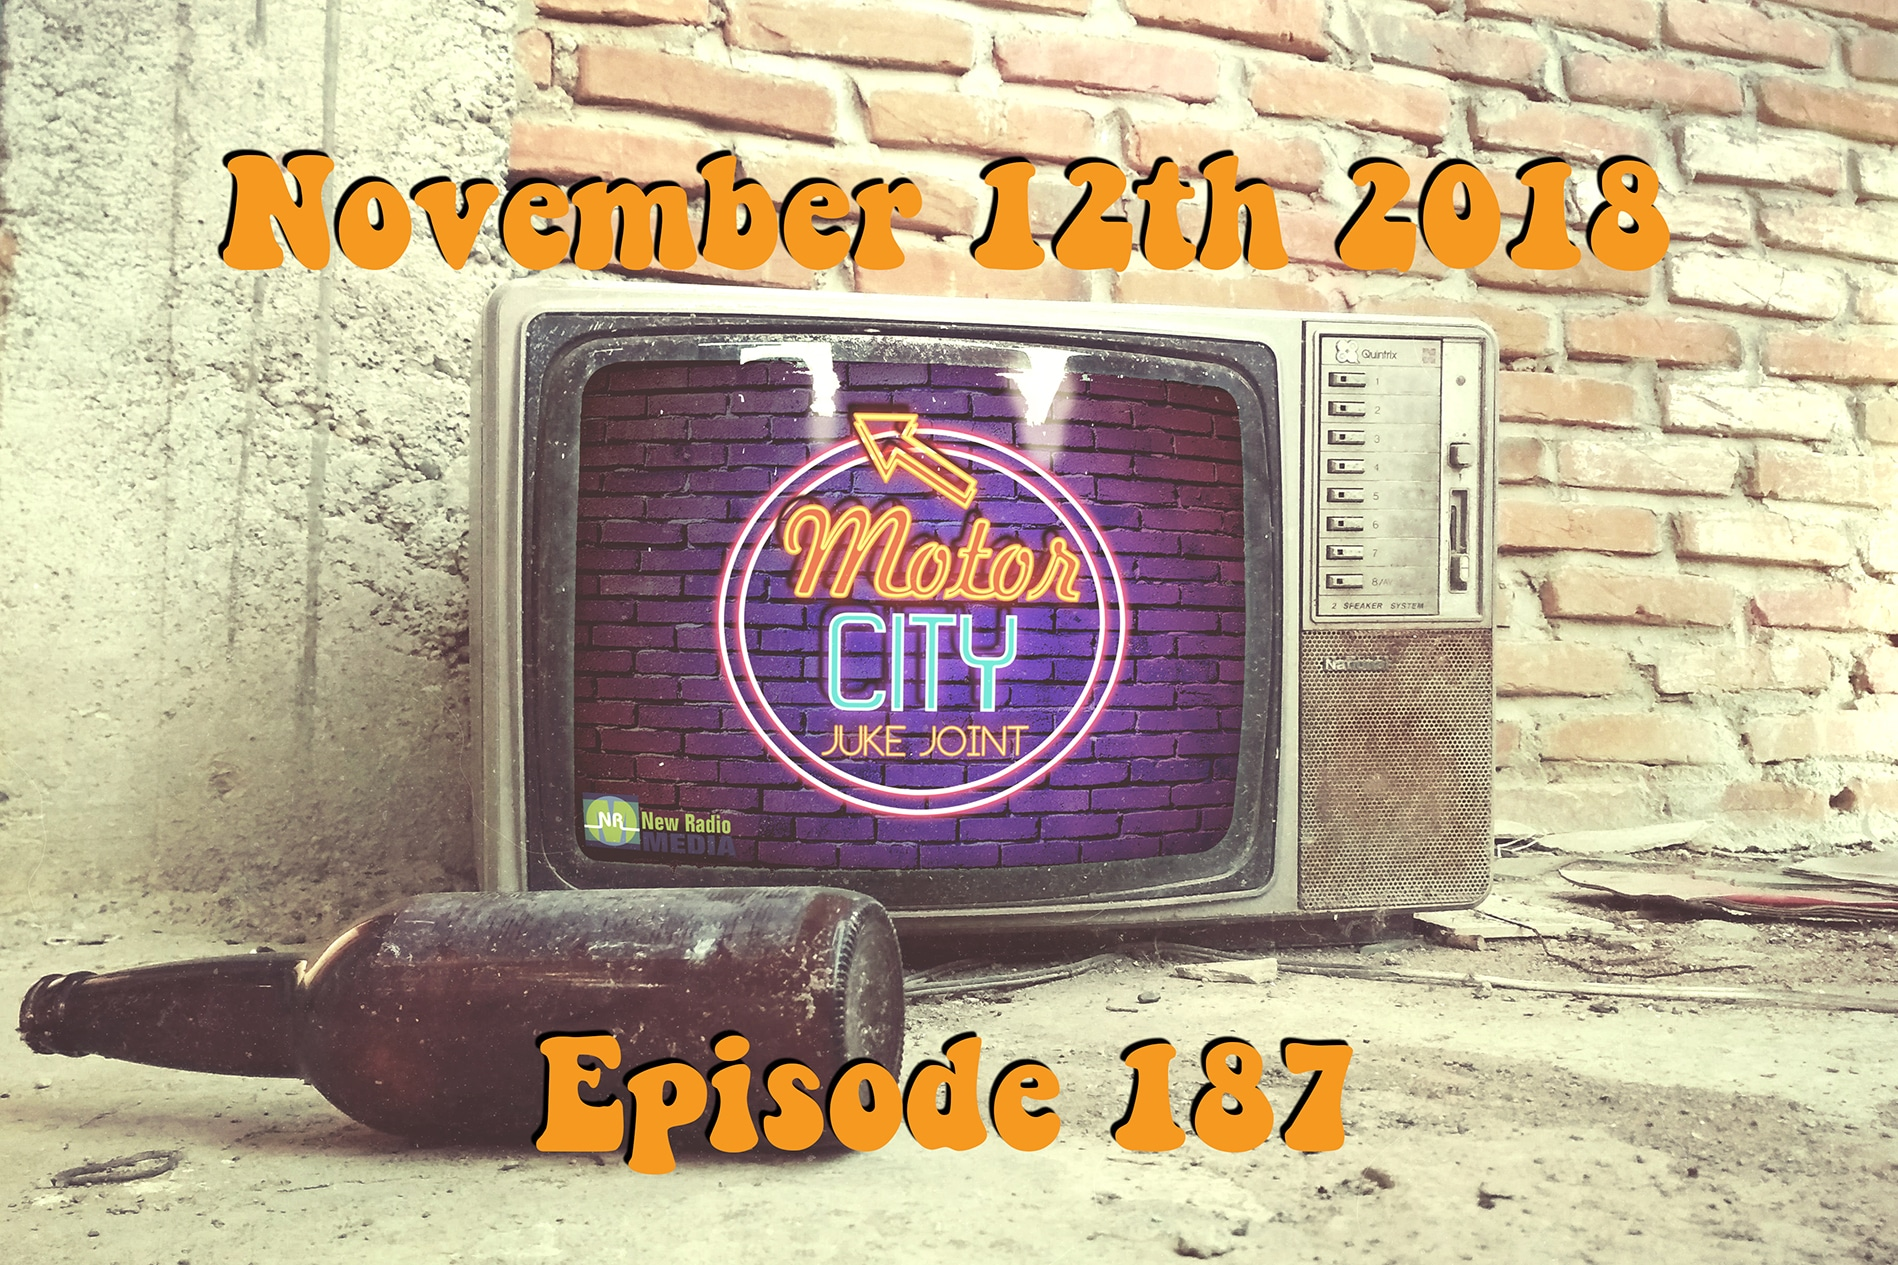 Motor City Juke Joint - Episode 187